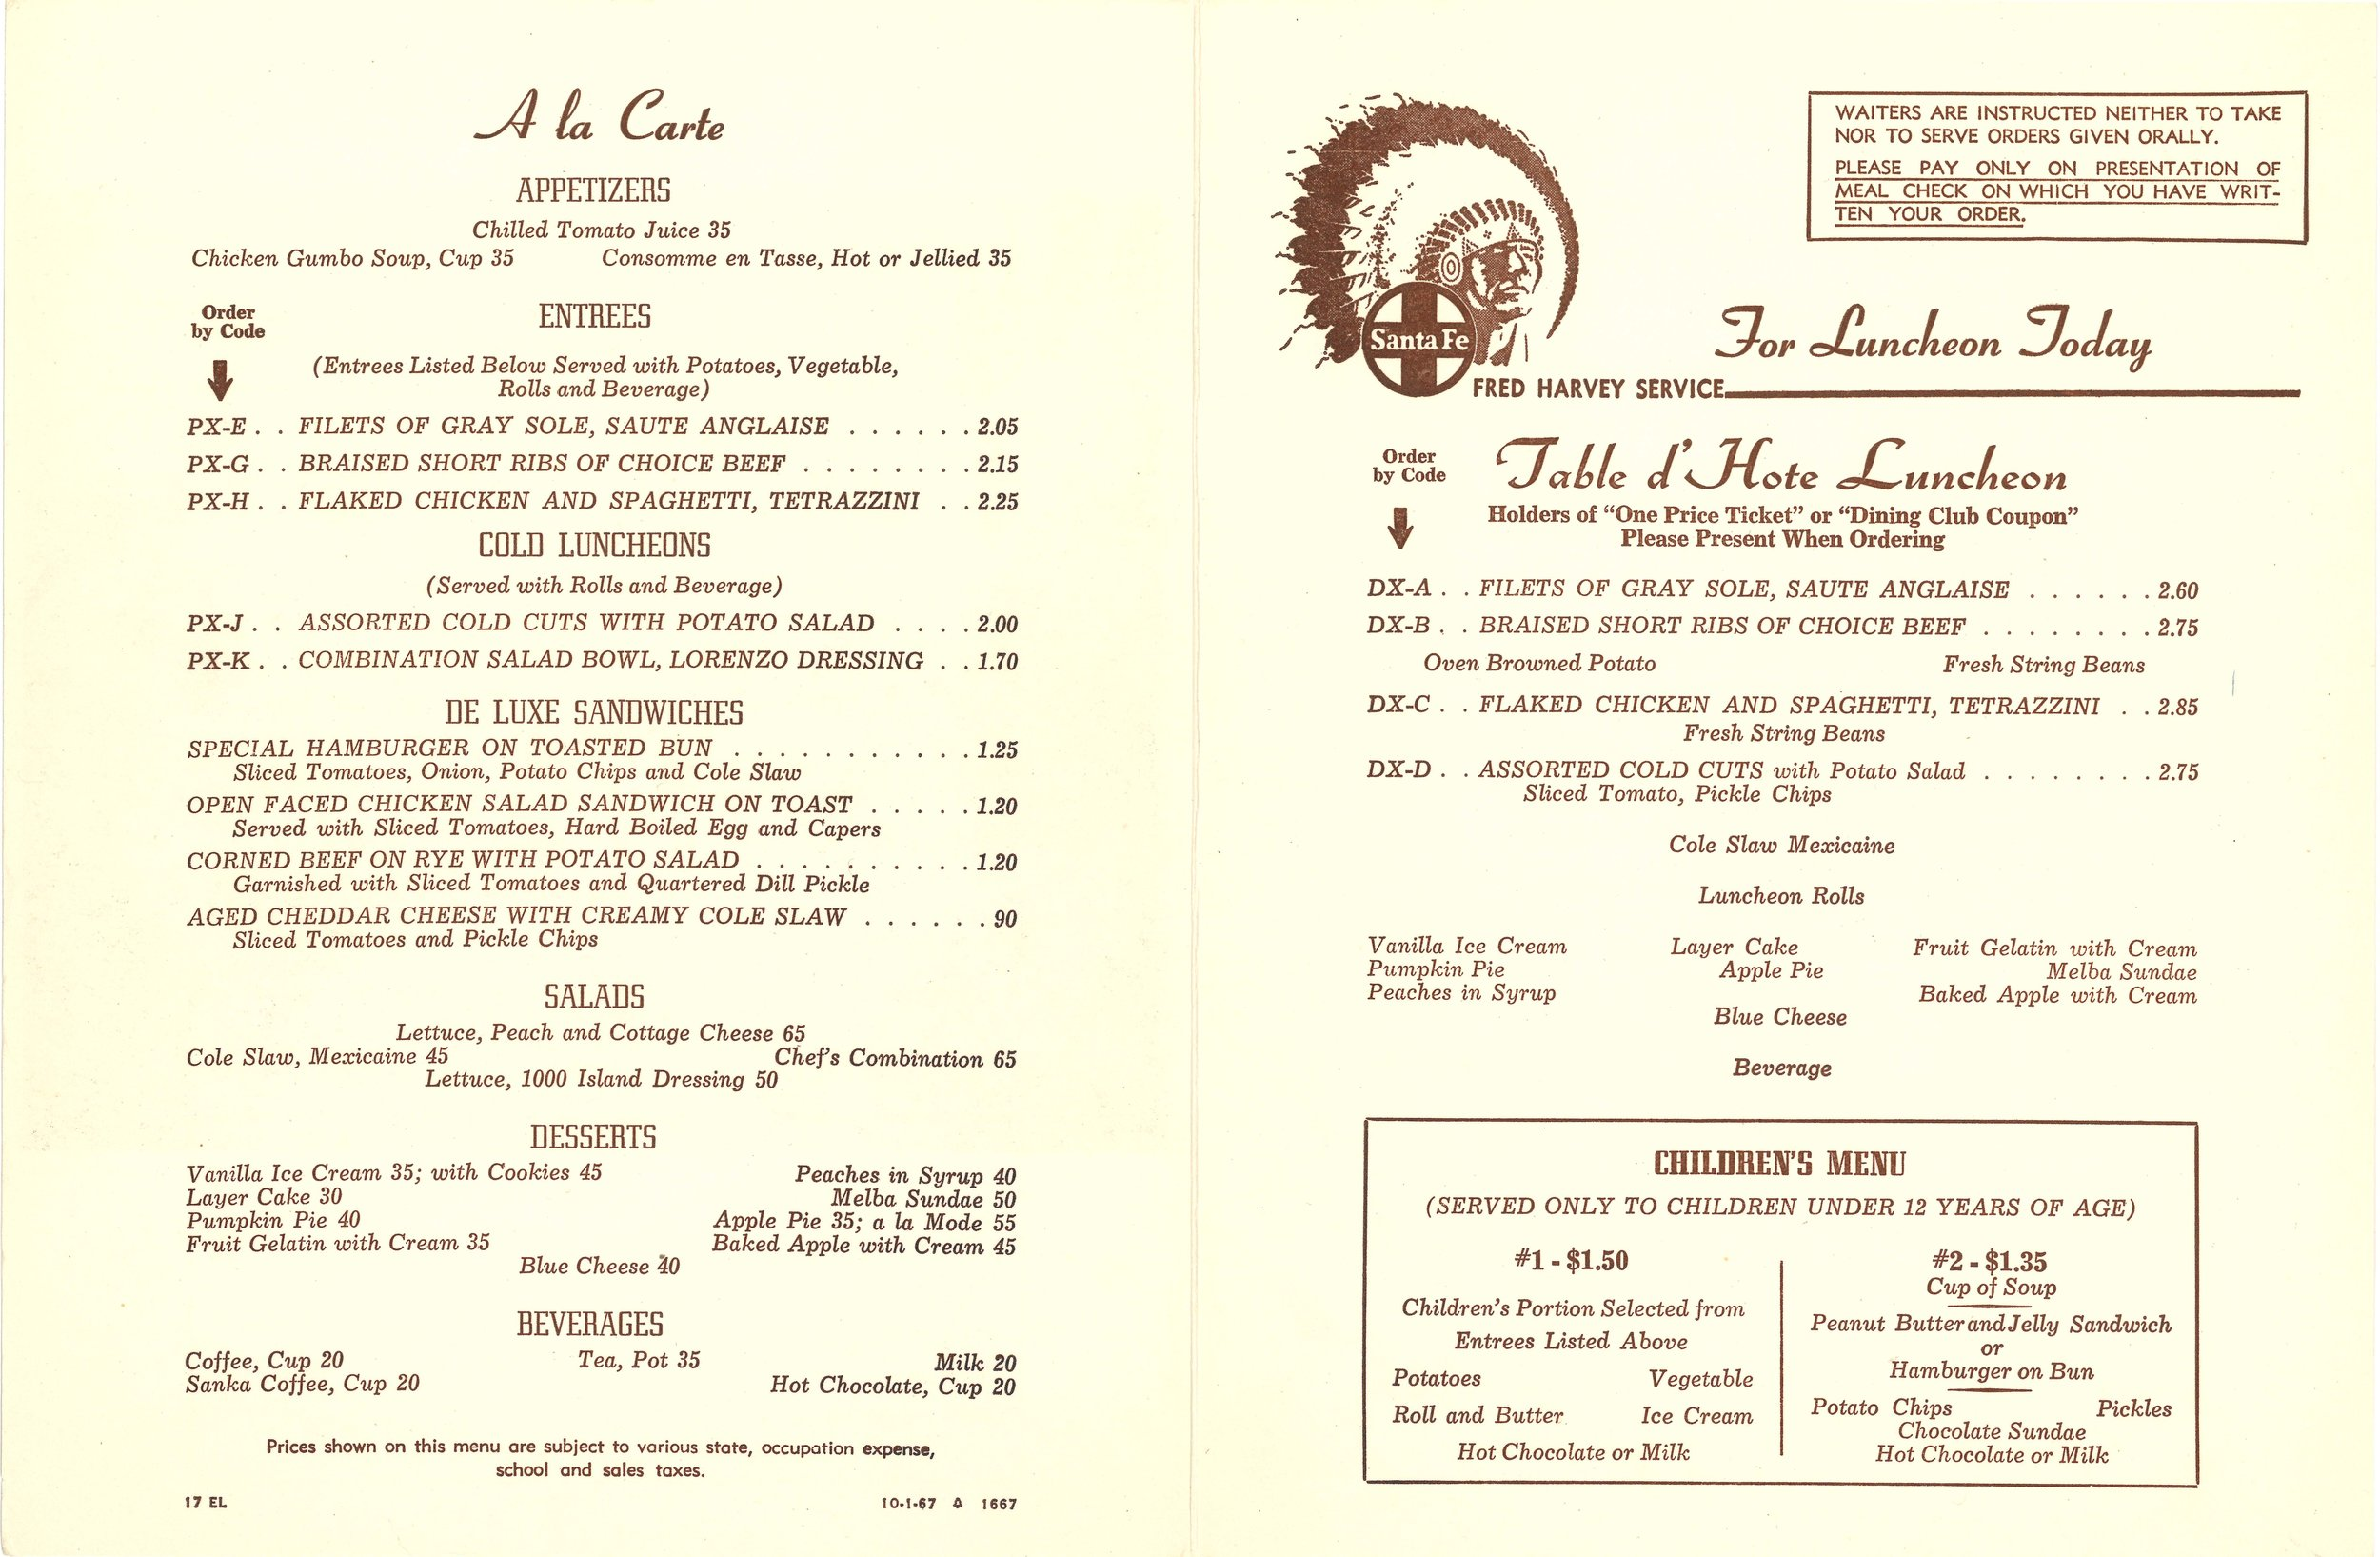 Santa Fe Grand Canyon Lunch Menu_sm2.jpg